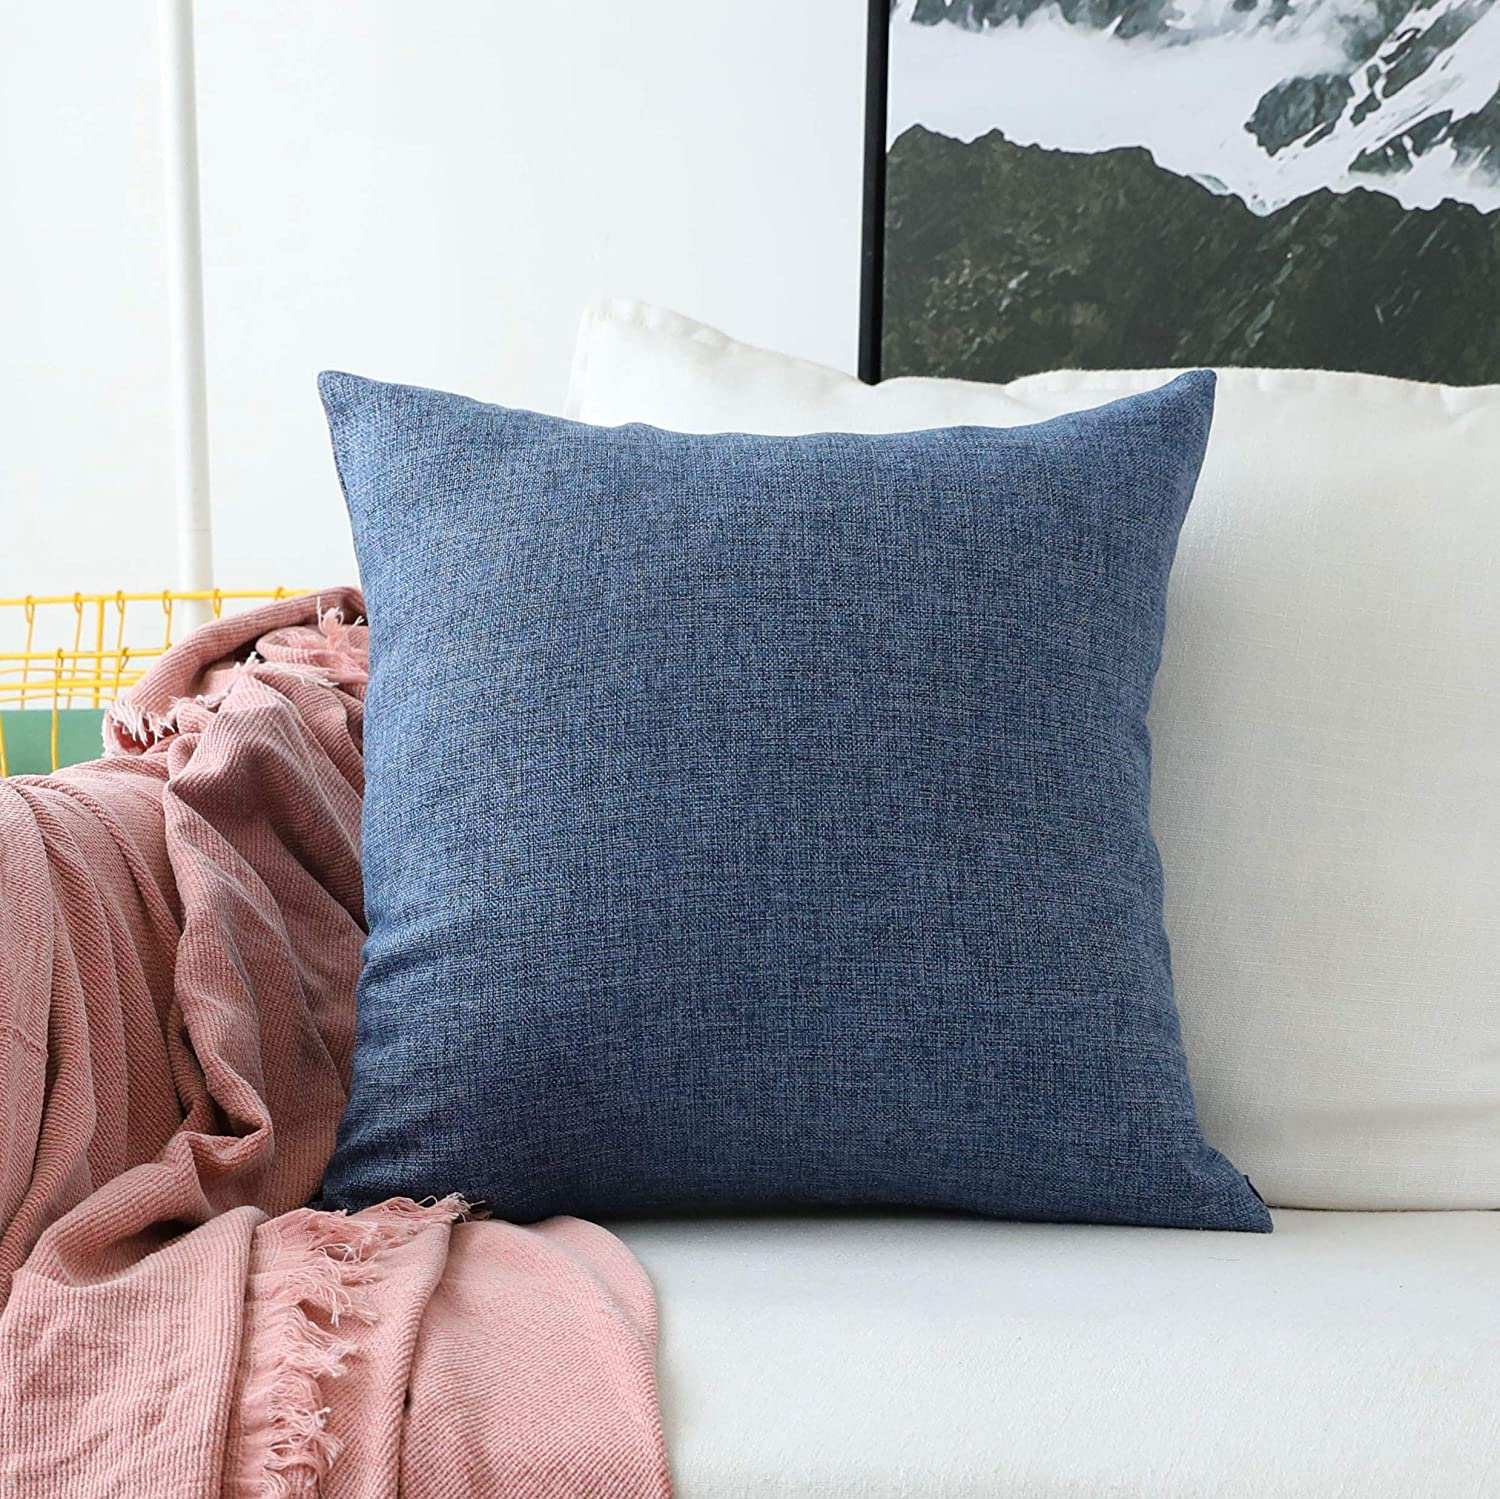 Home Brilliant Linen Euro Sham Large Throw Pillow Cover for Patio Floor, 26 x 26 Inch(66x66 cm), Navy Blue